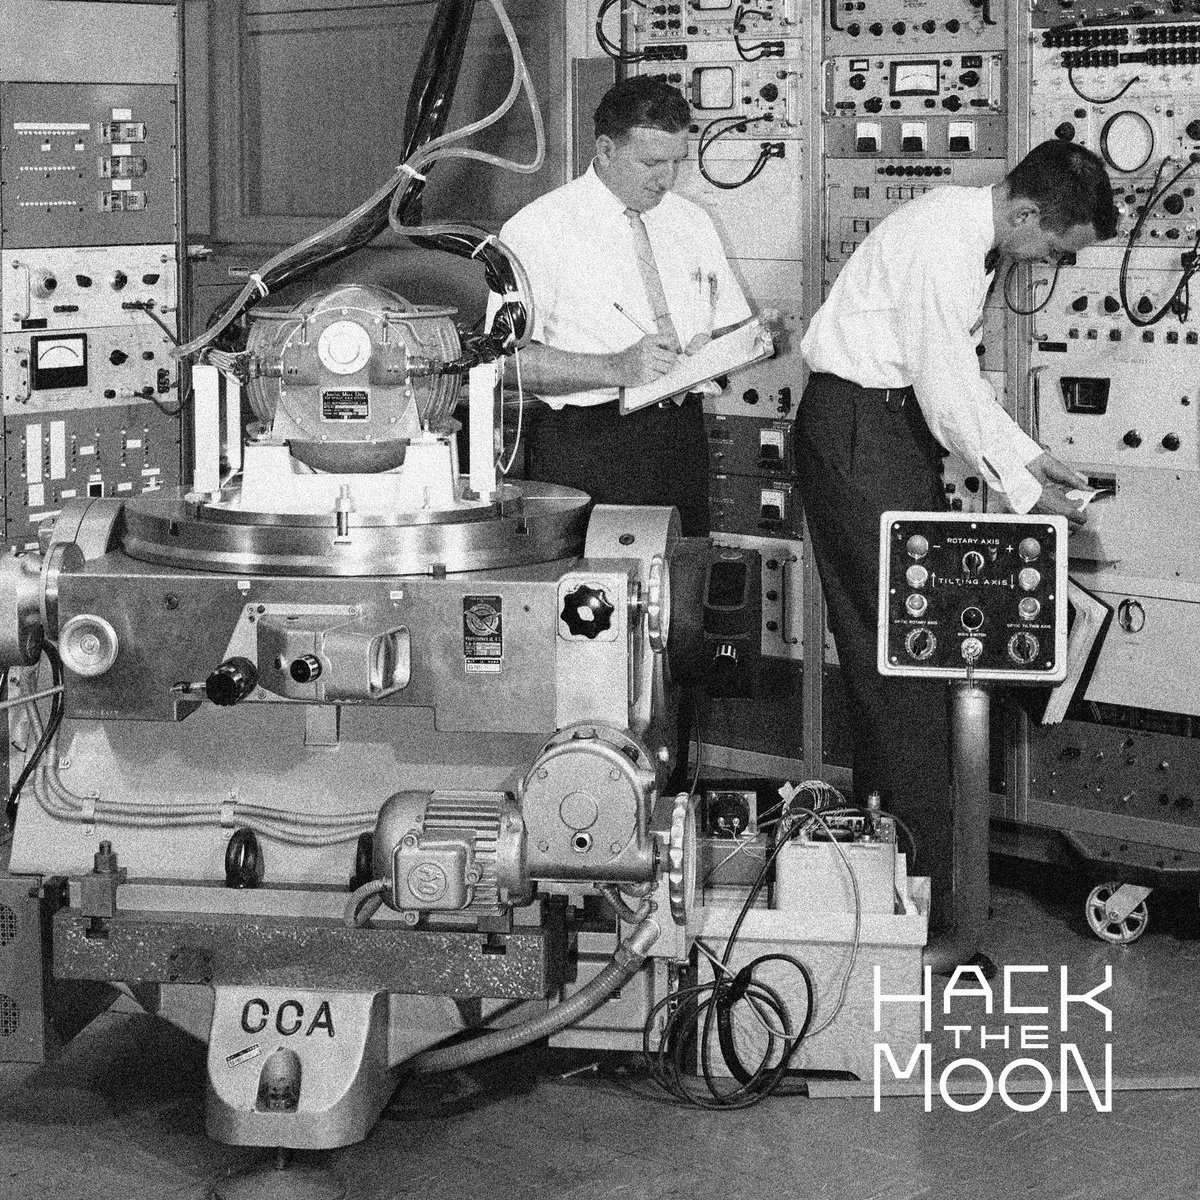 Experience the moon landing like never before with these recently unearthed images from the team that got us to the moon and back again 50 years ago. #tbt wehackthemoon.com